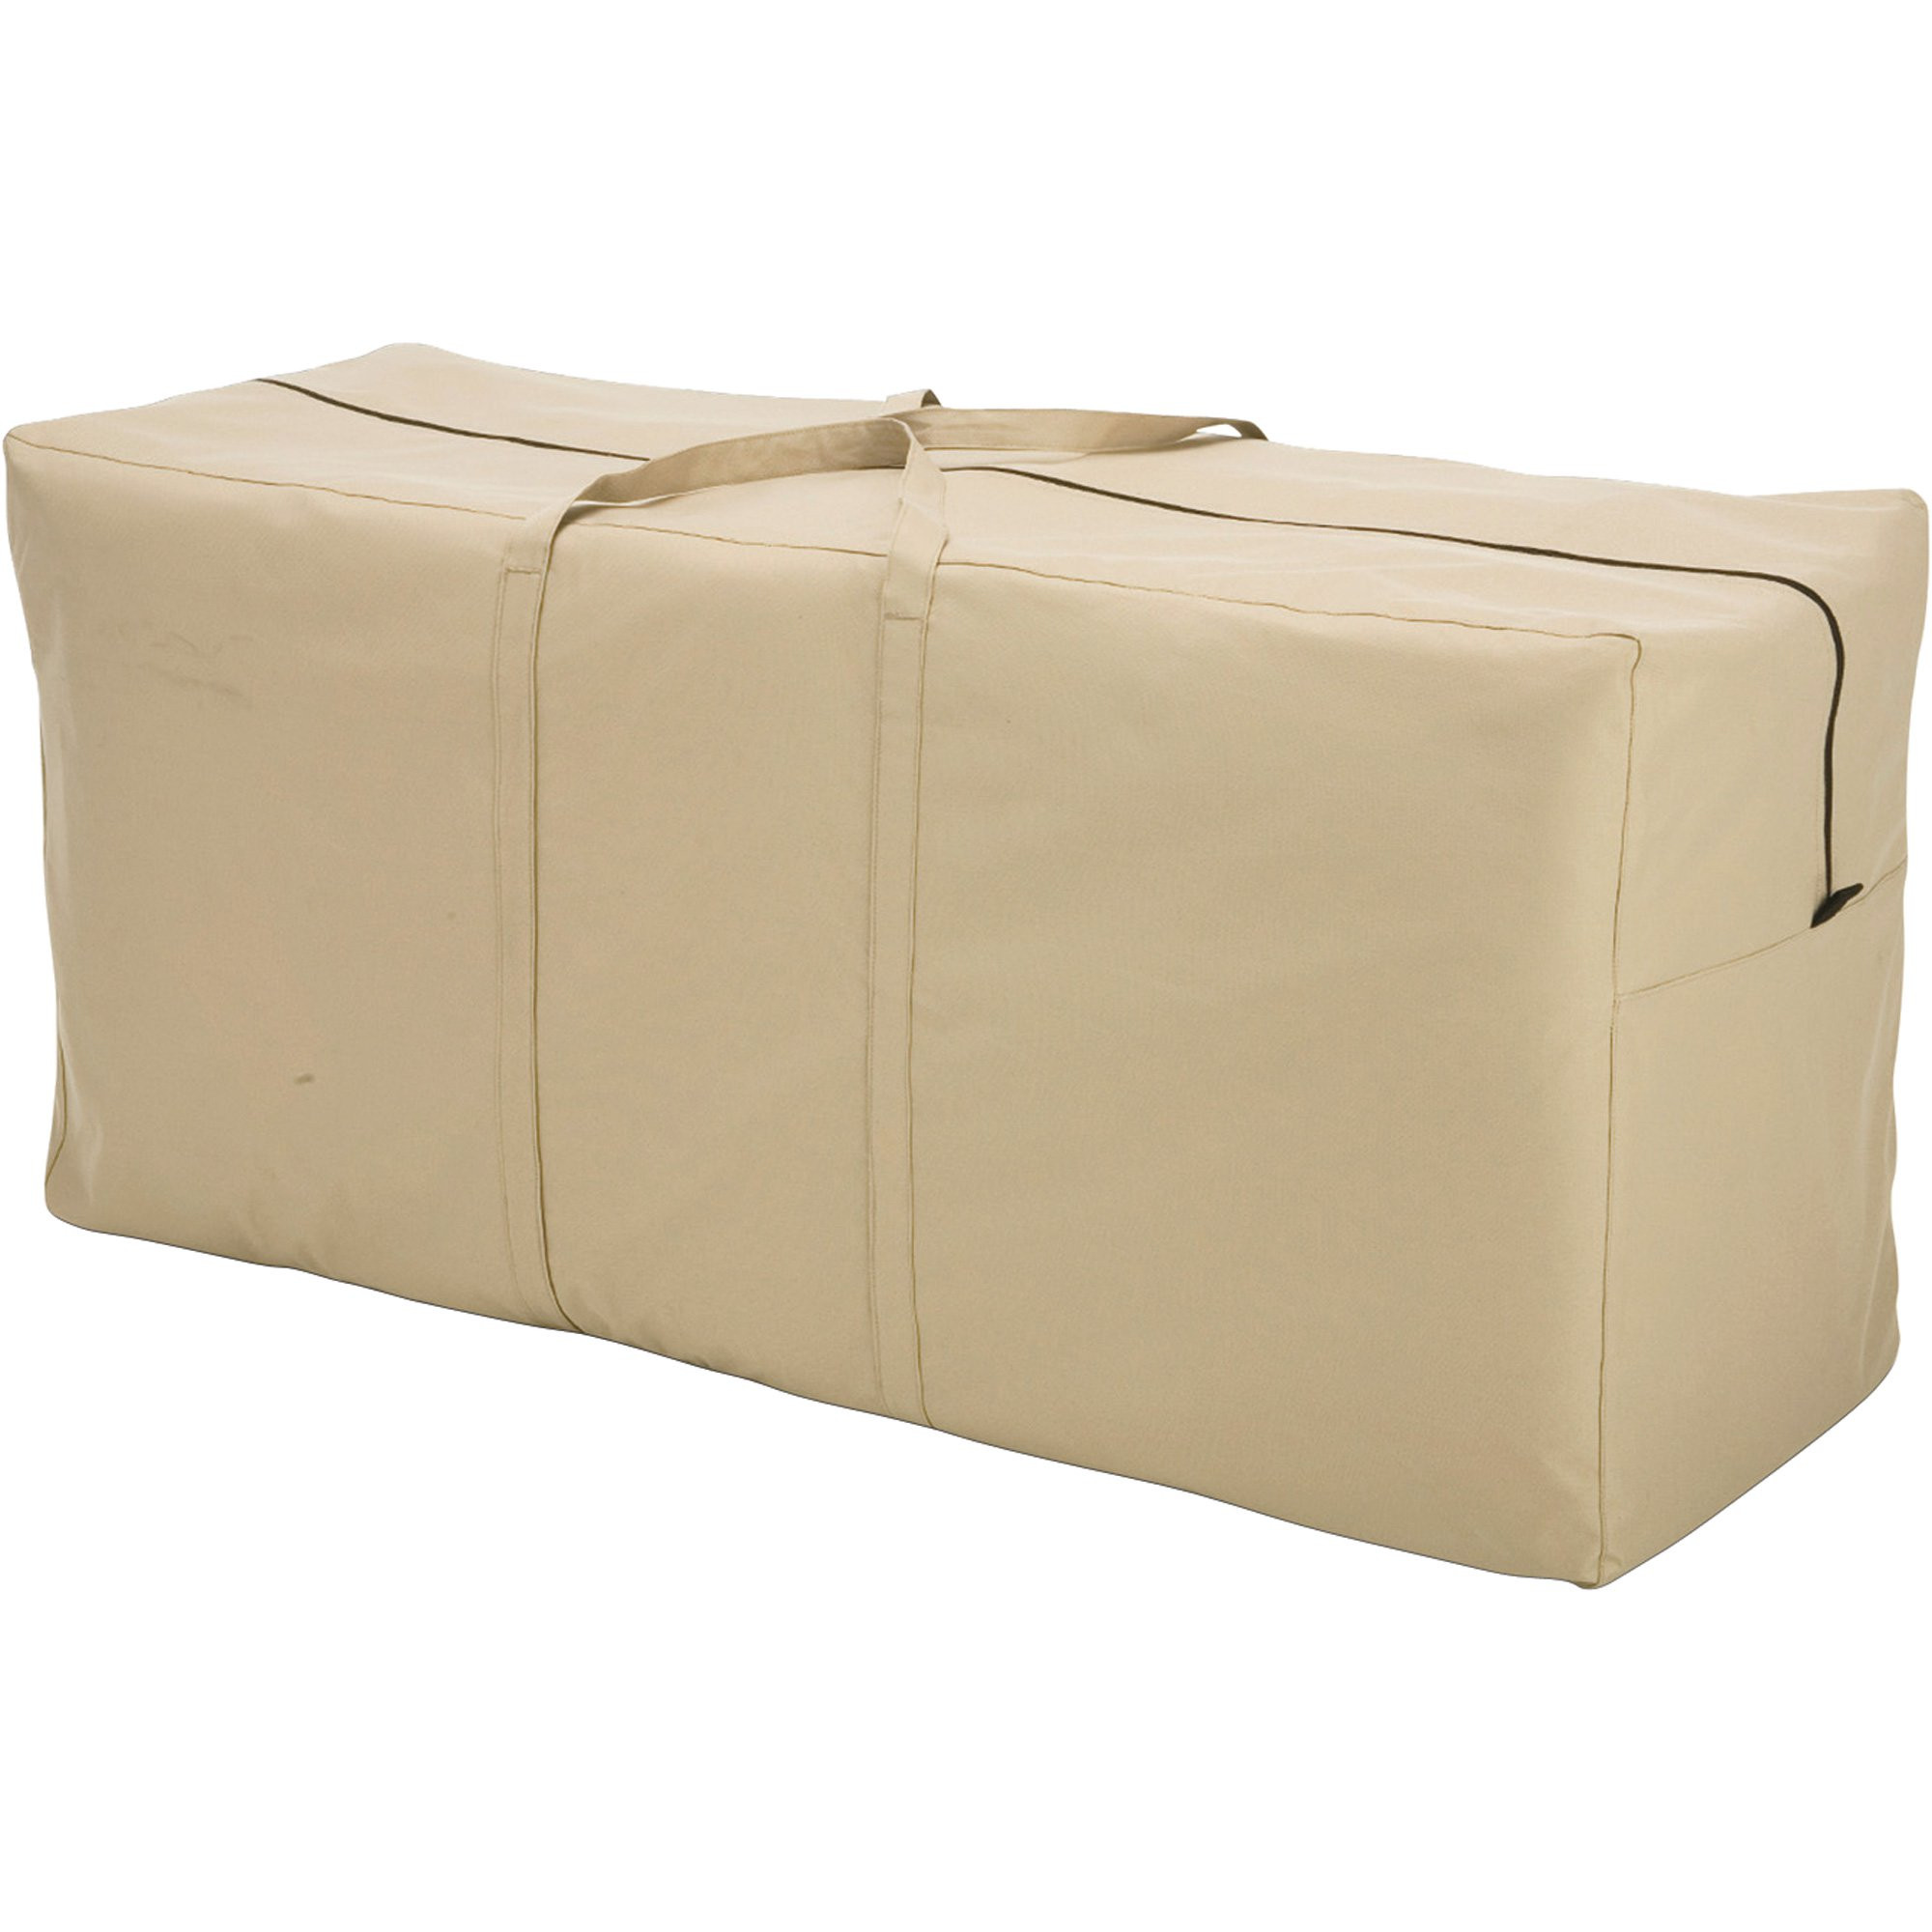 Best ideas about Patio Furniture Cushion Covers . Save or Pin Patio Chair Cushion Cover Now.